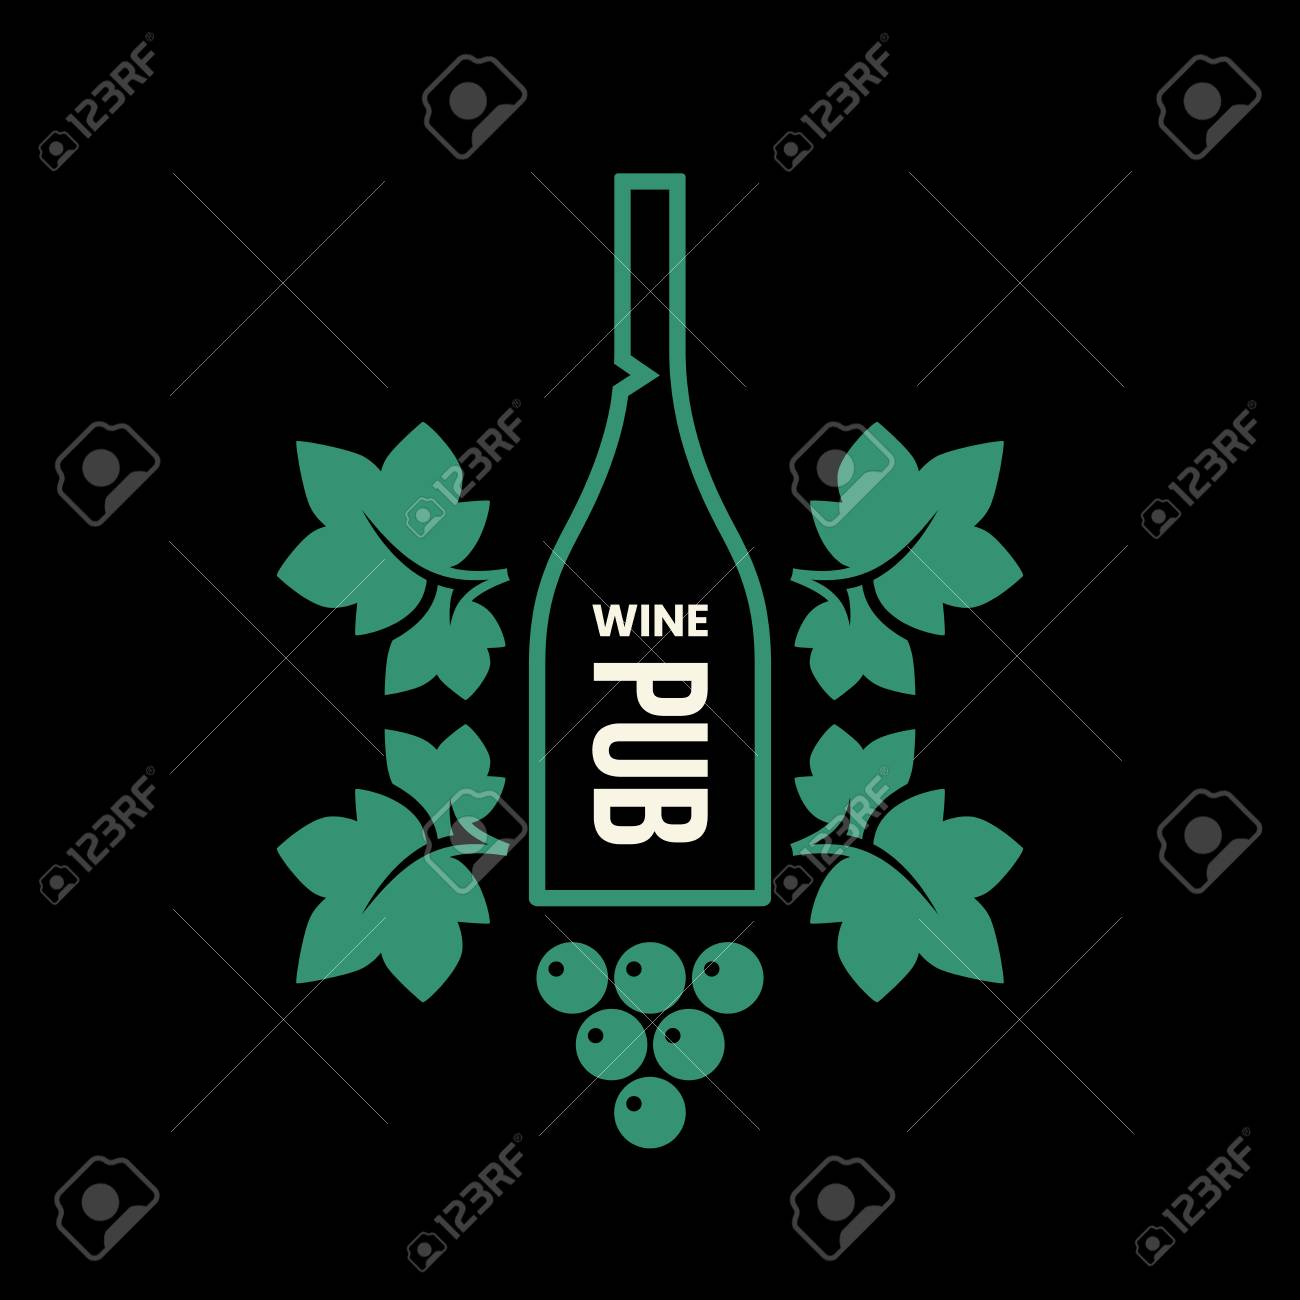 Modern wine vector logo sign for tavern, restaurant, house, shop, store, club and cellar isolated on black background. Premium quality vinery logotype illustration. Fashion brand badge design template. - 126498882